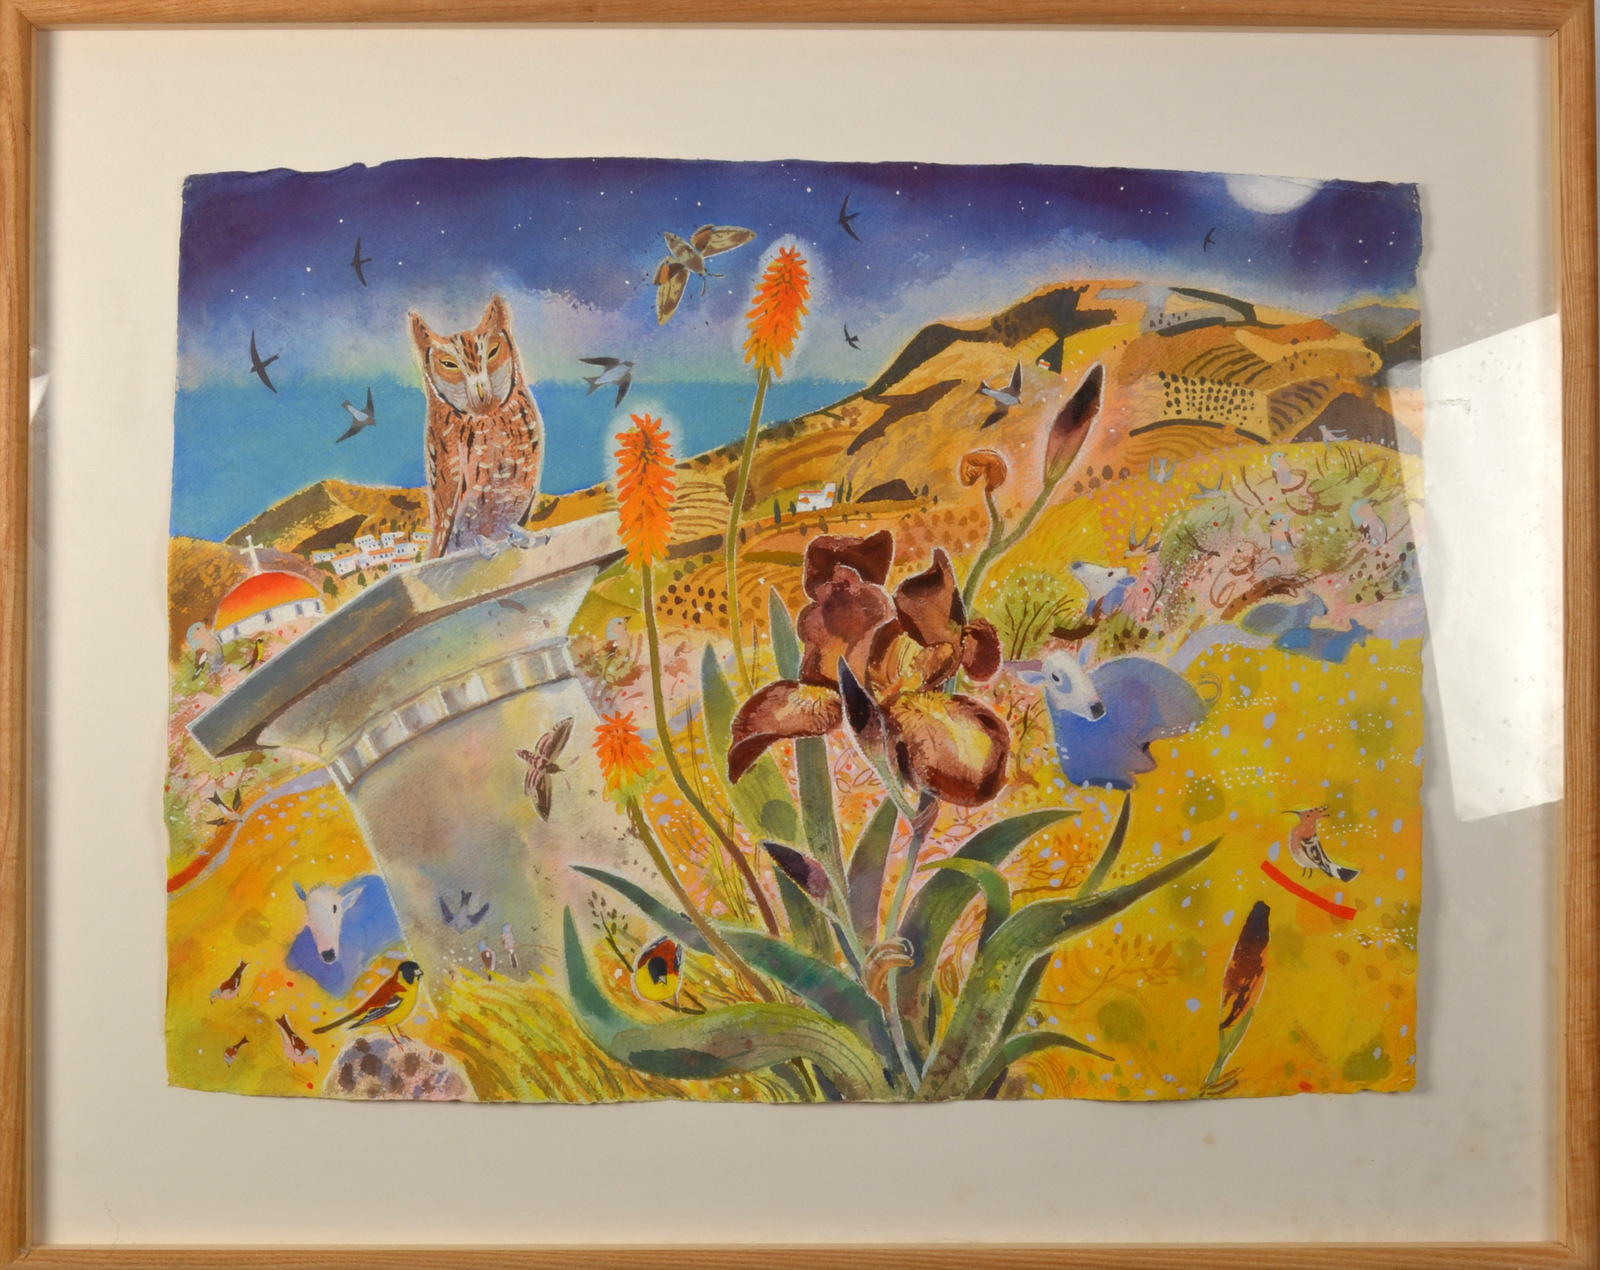 Lot 8 - ANDREW WADDINGTON At Nightfall as the Sea Darkens Watercolour Signed Dated 2001 Titled on the